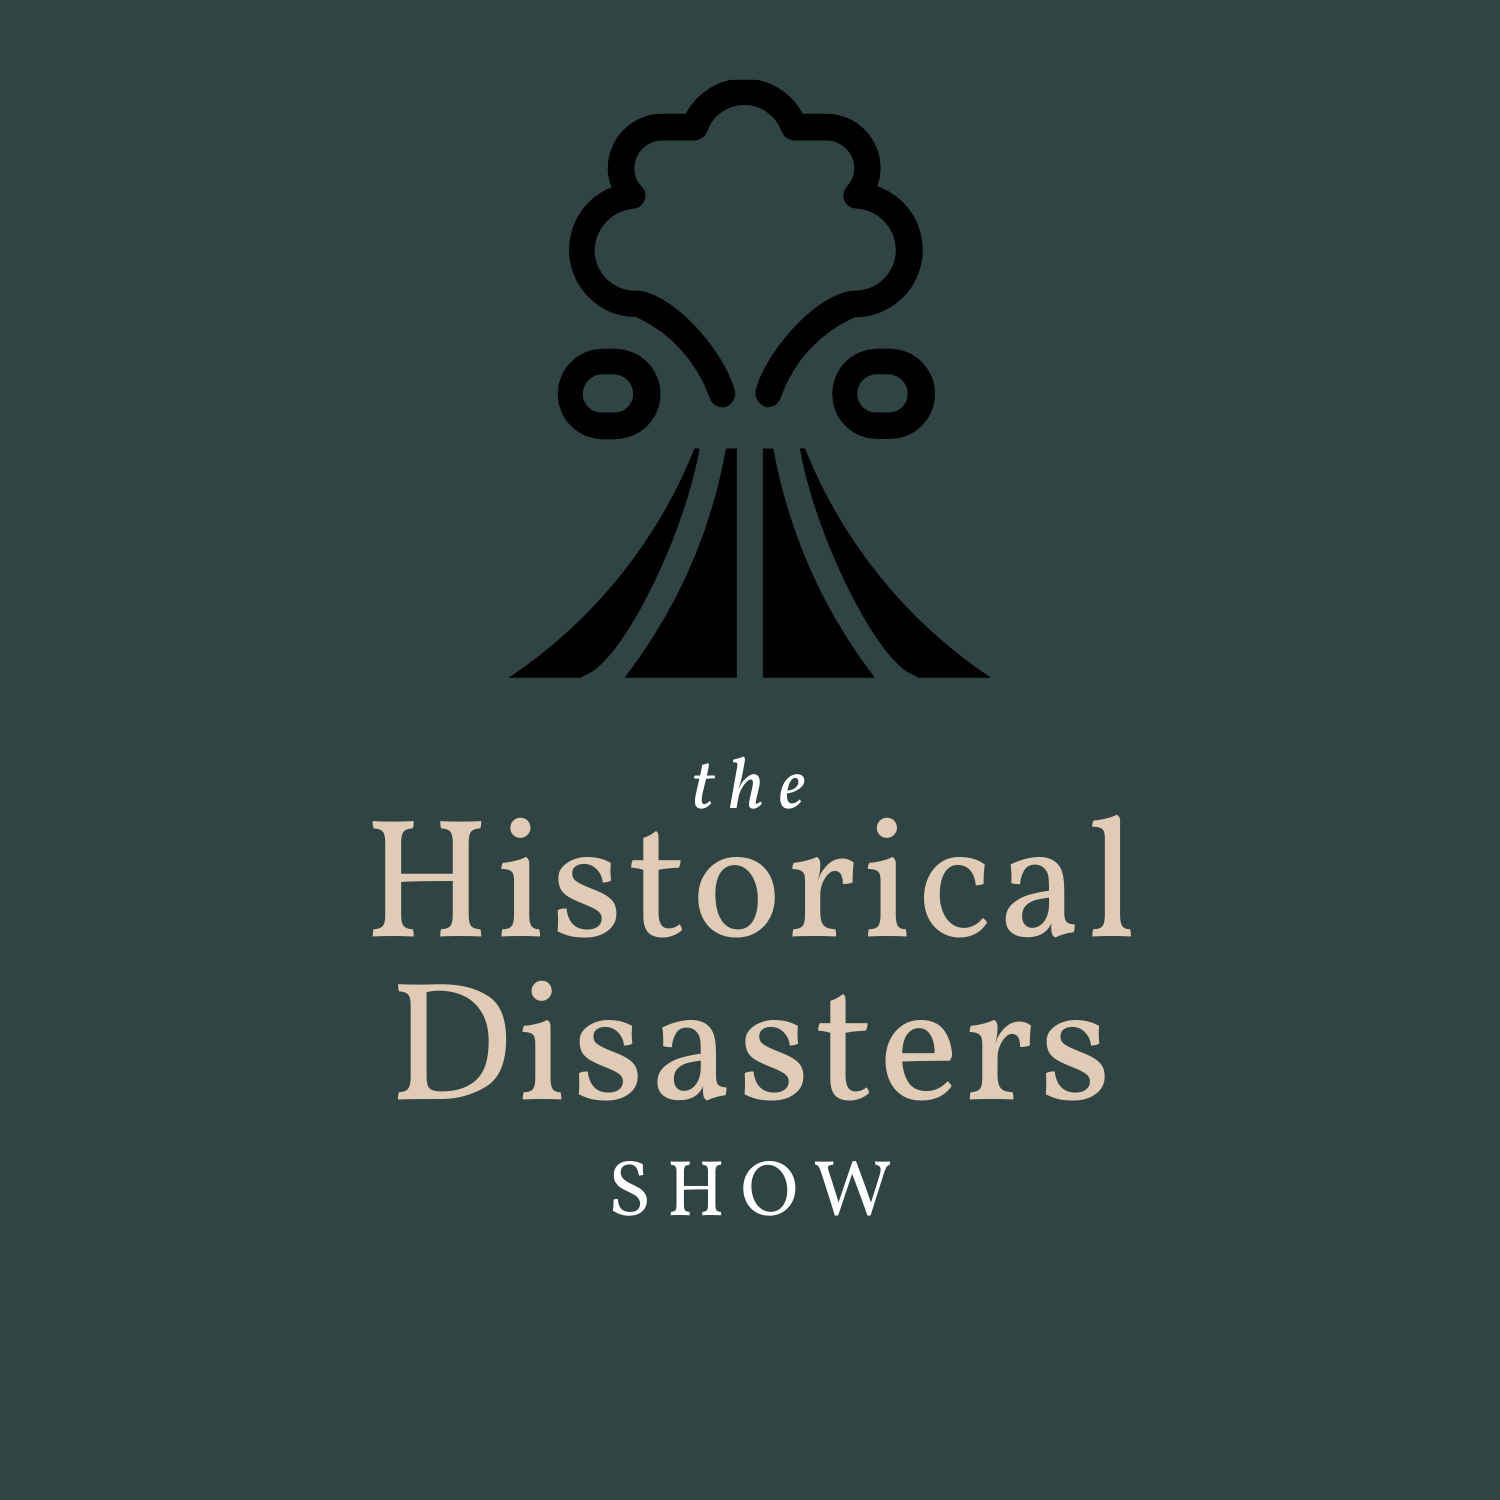 The Historical Disasters Show